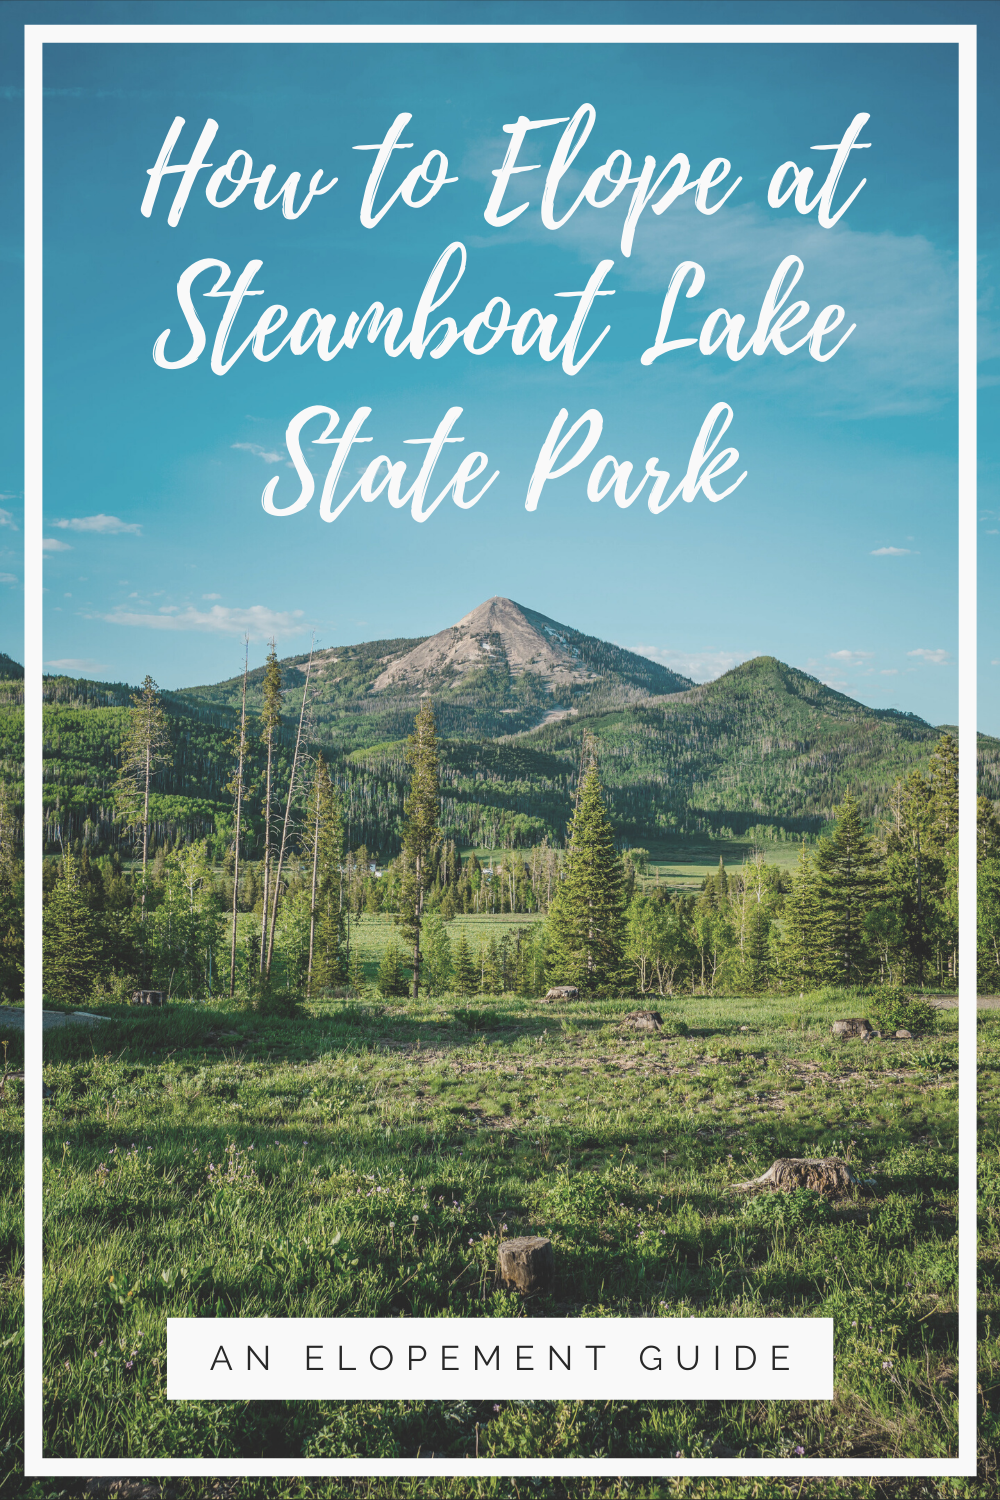 Are you planning an elopement? Congrats! We've brainstormed all the best places to elope. Check out Steamboat Lake State Park for your adventure elopement in Colorado. This is one of our favorite elopement destinations because of the perfect views and the fun recreation.